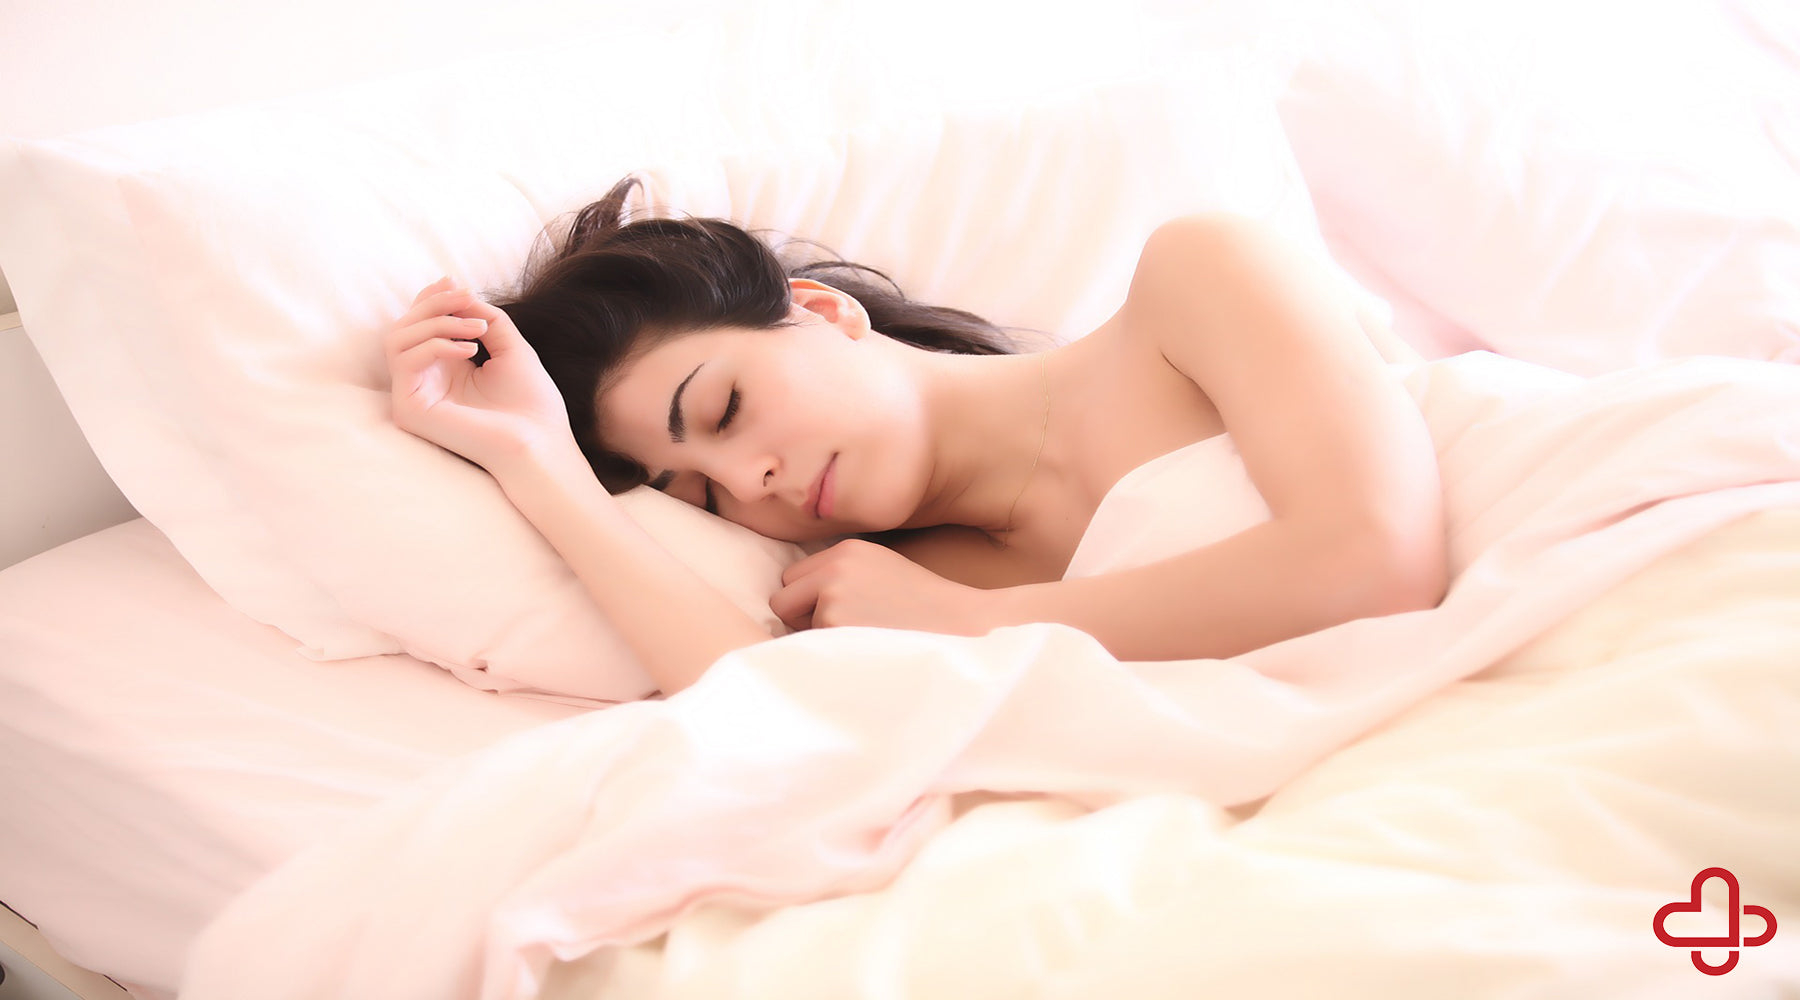 Why does your shoulder hurt when you sleep? And what helps?